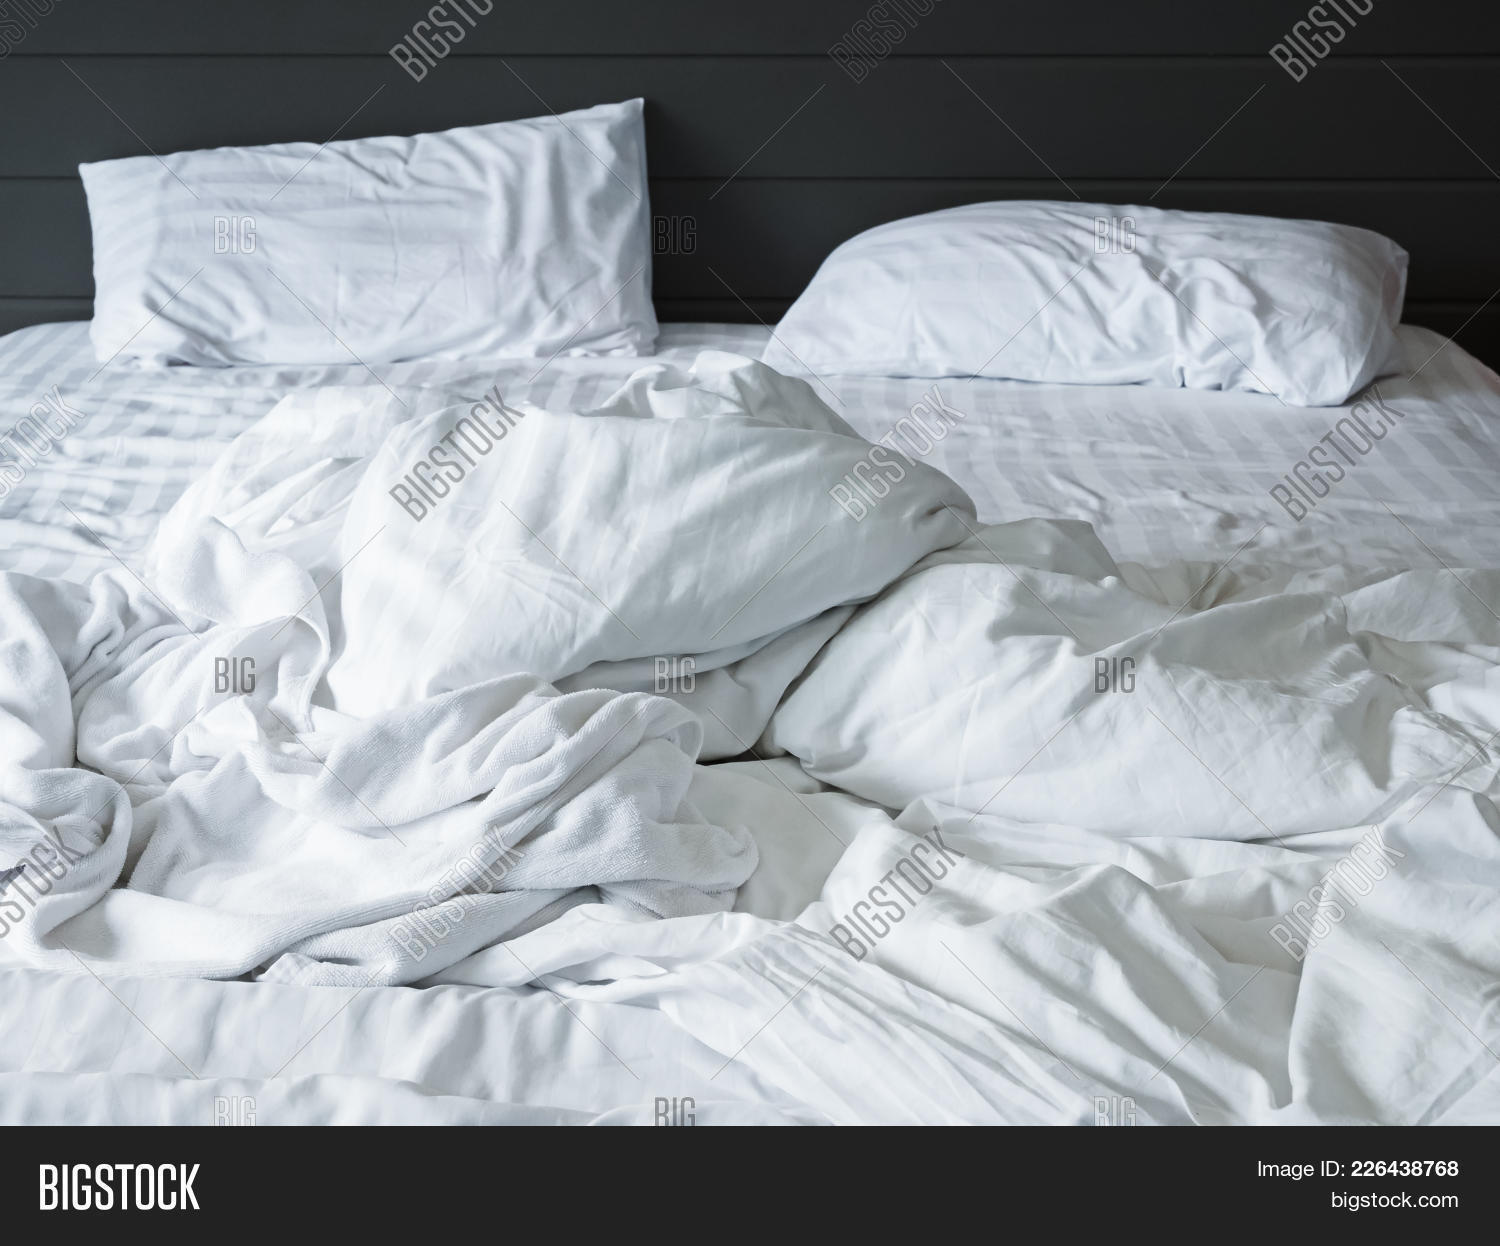 Messy White Bedding Sheets And Pillow In Bedroom Background , Unmade Messy  Bed After Comfort Sleep